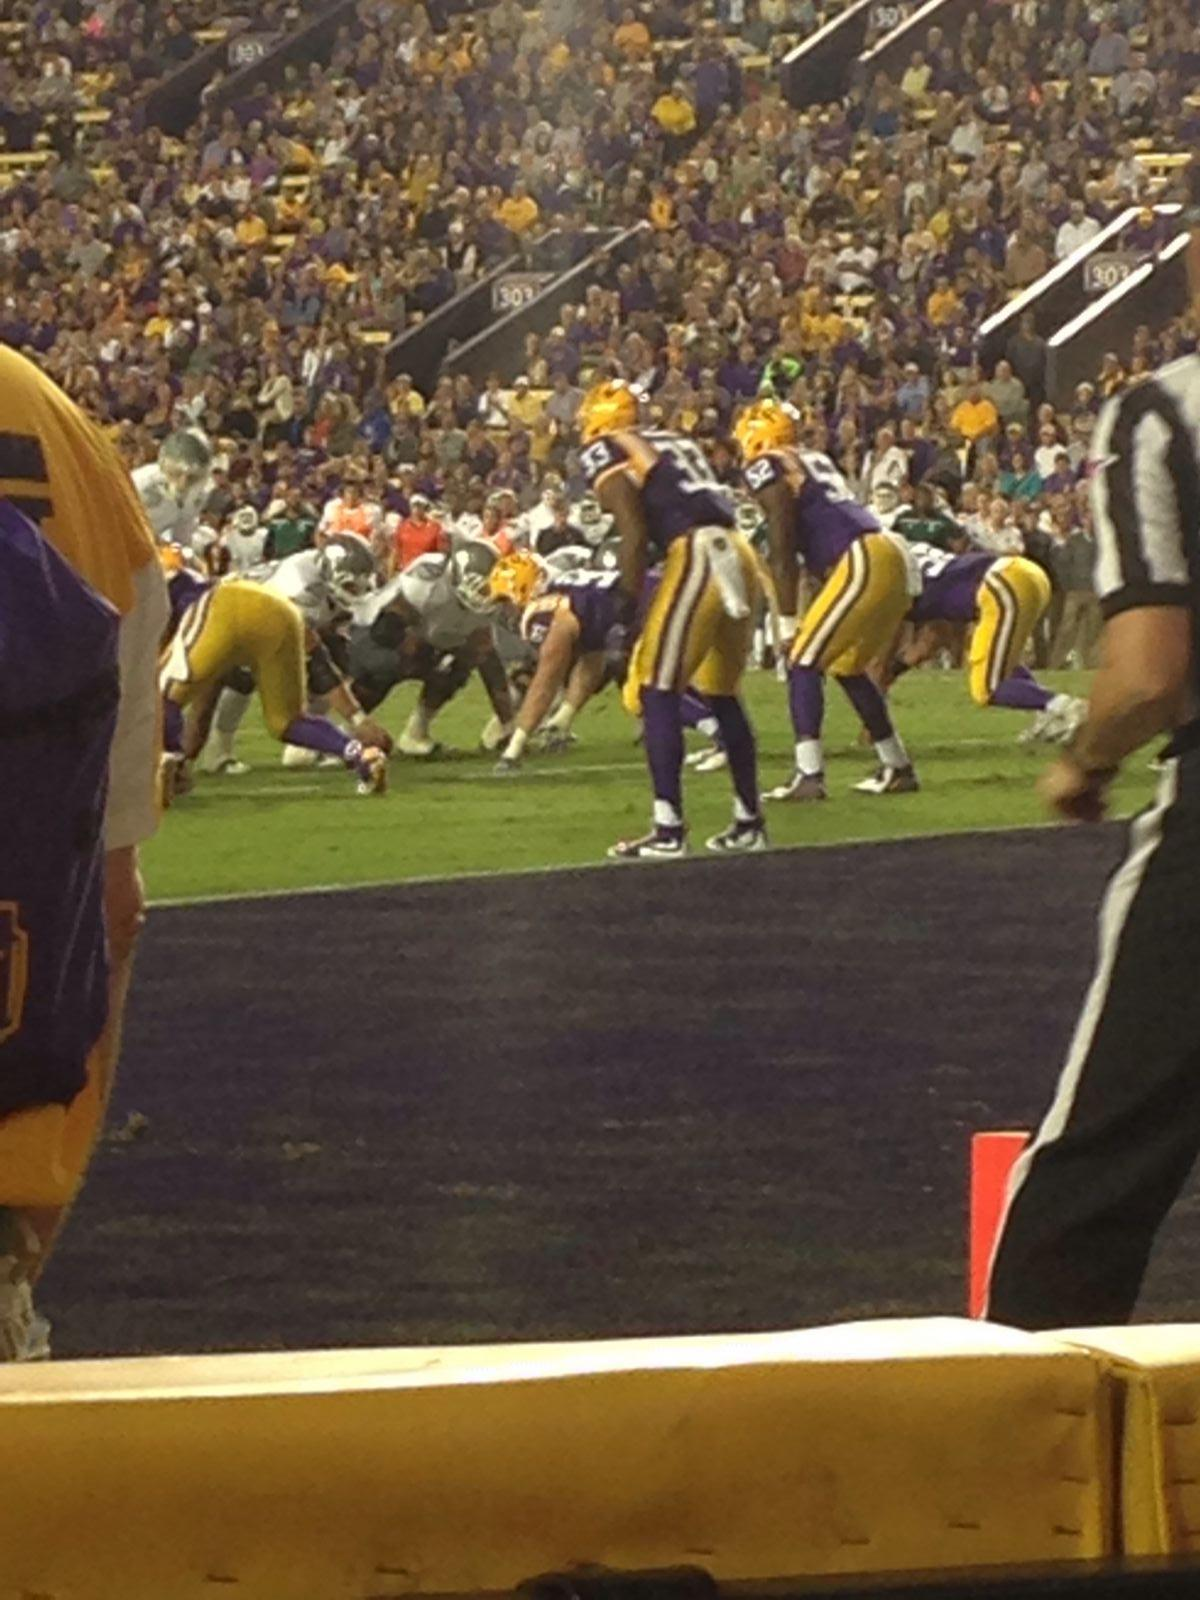 Seat View for Tiger Stadium South Box 47, Row 1, Seat 9